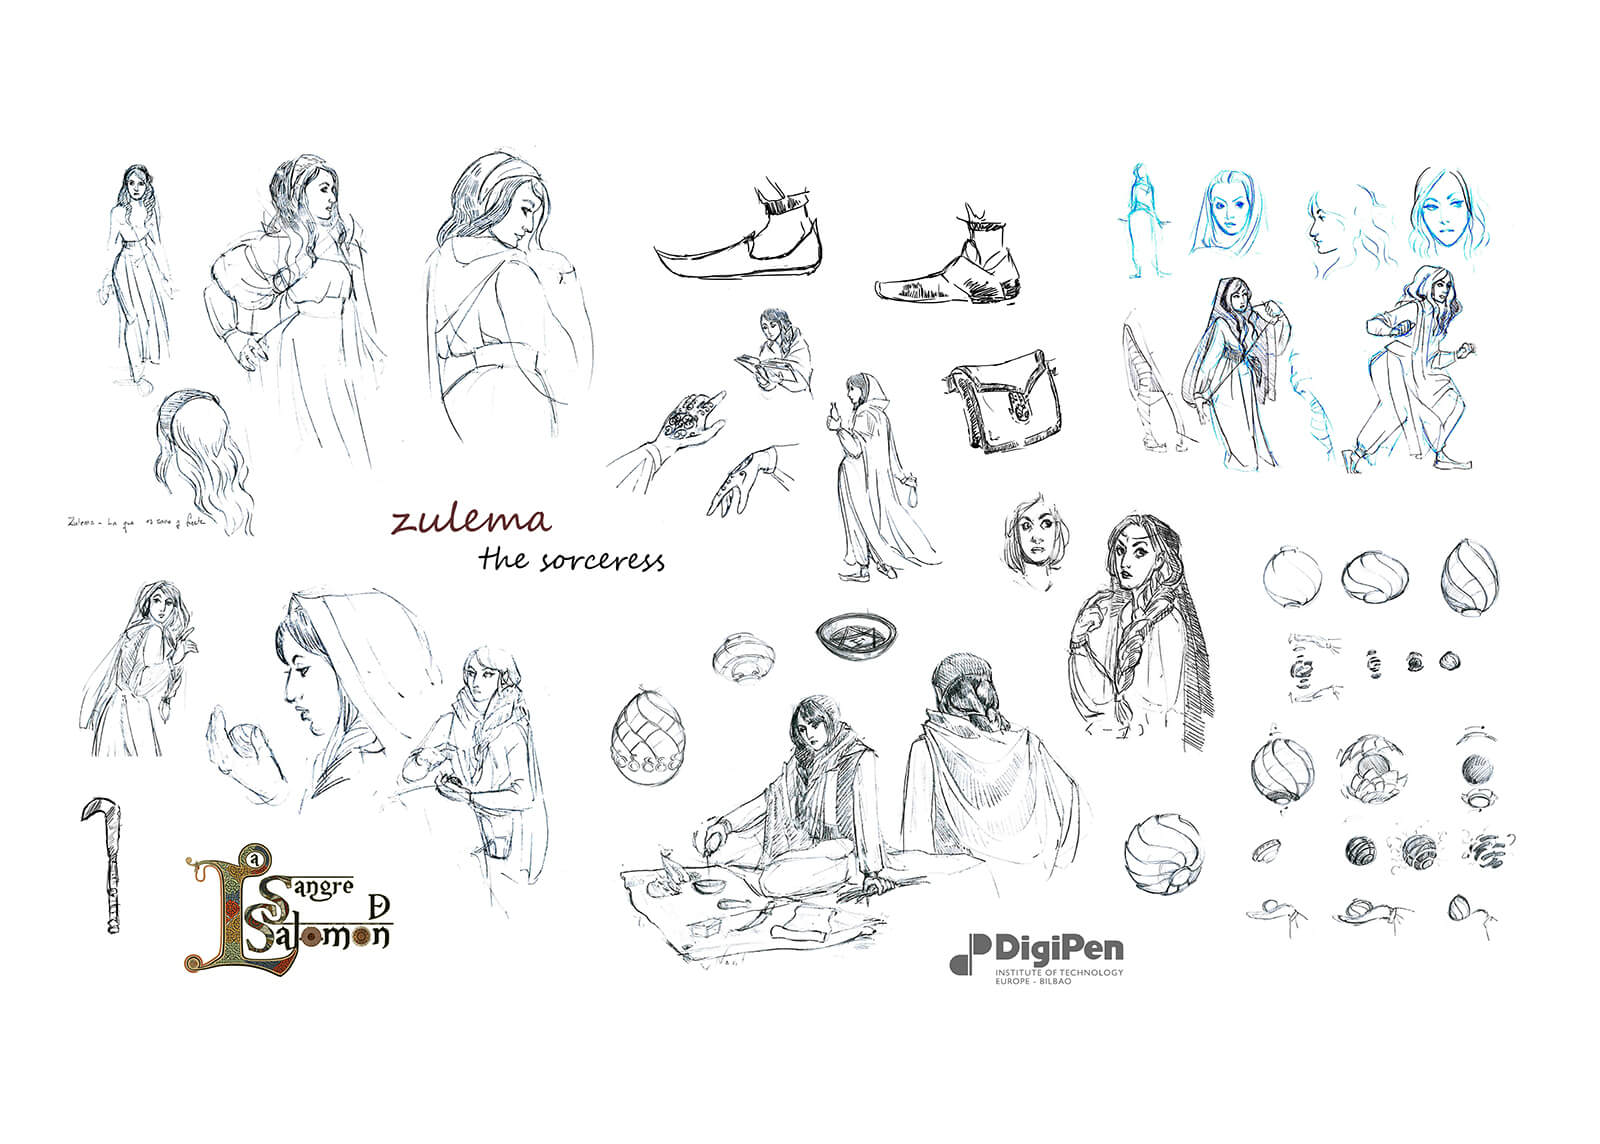 Concept drawings of Zulema The Sorceress from La Sangre de Salomon